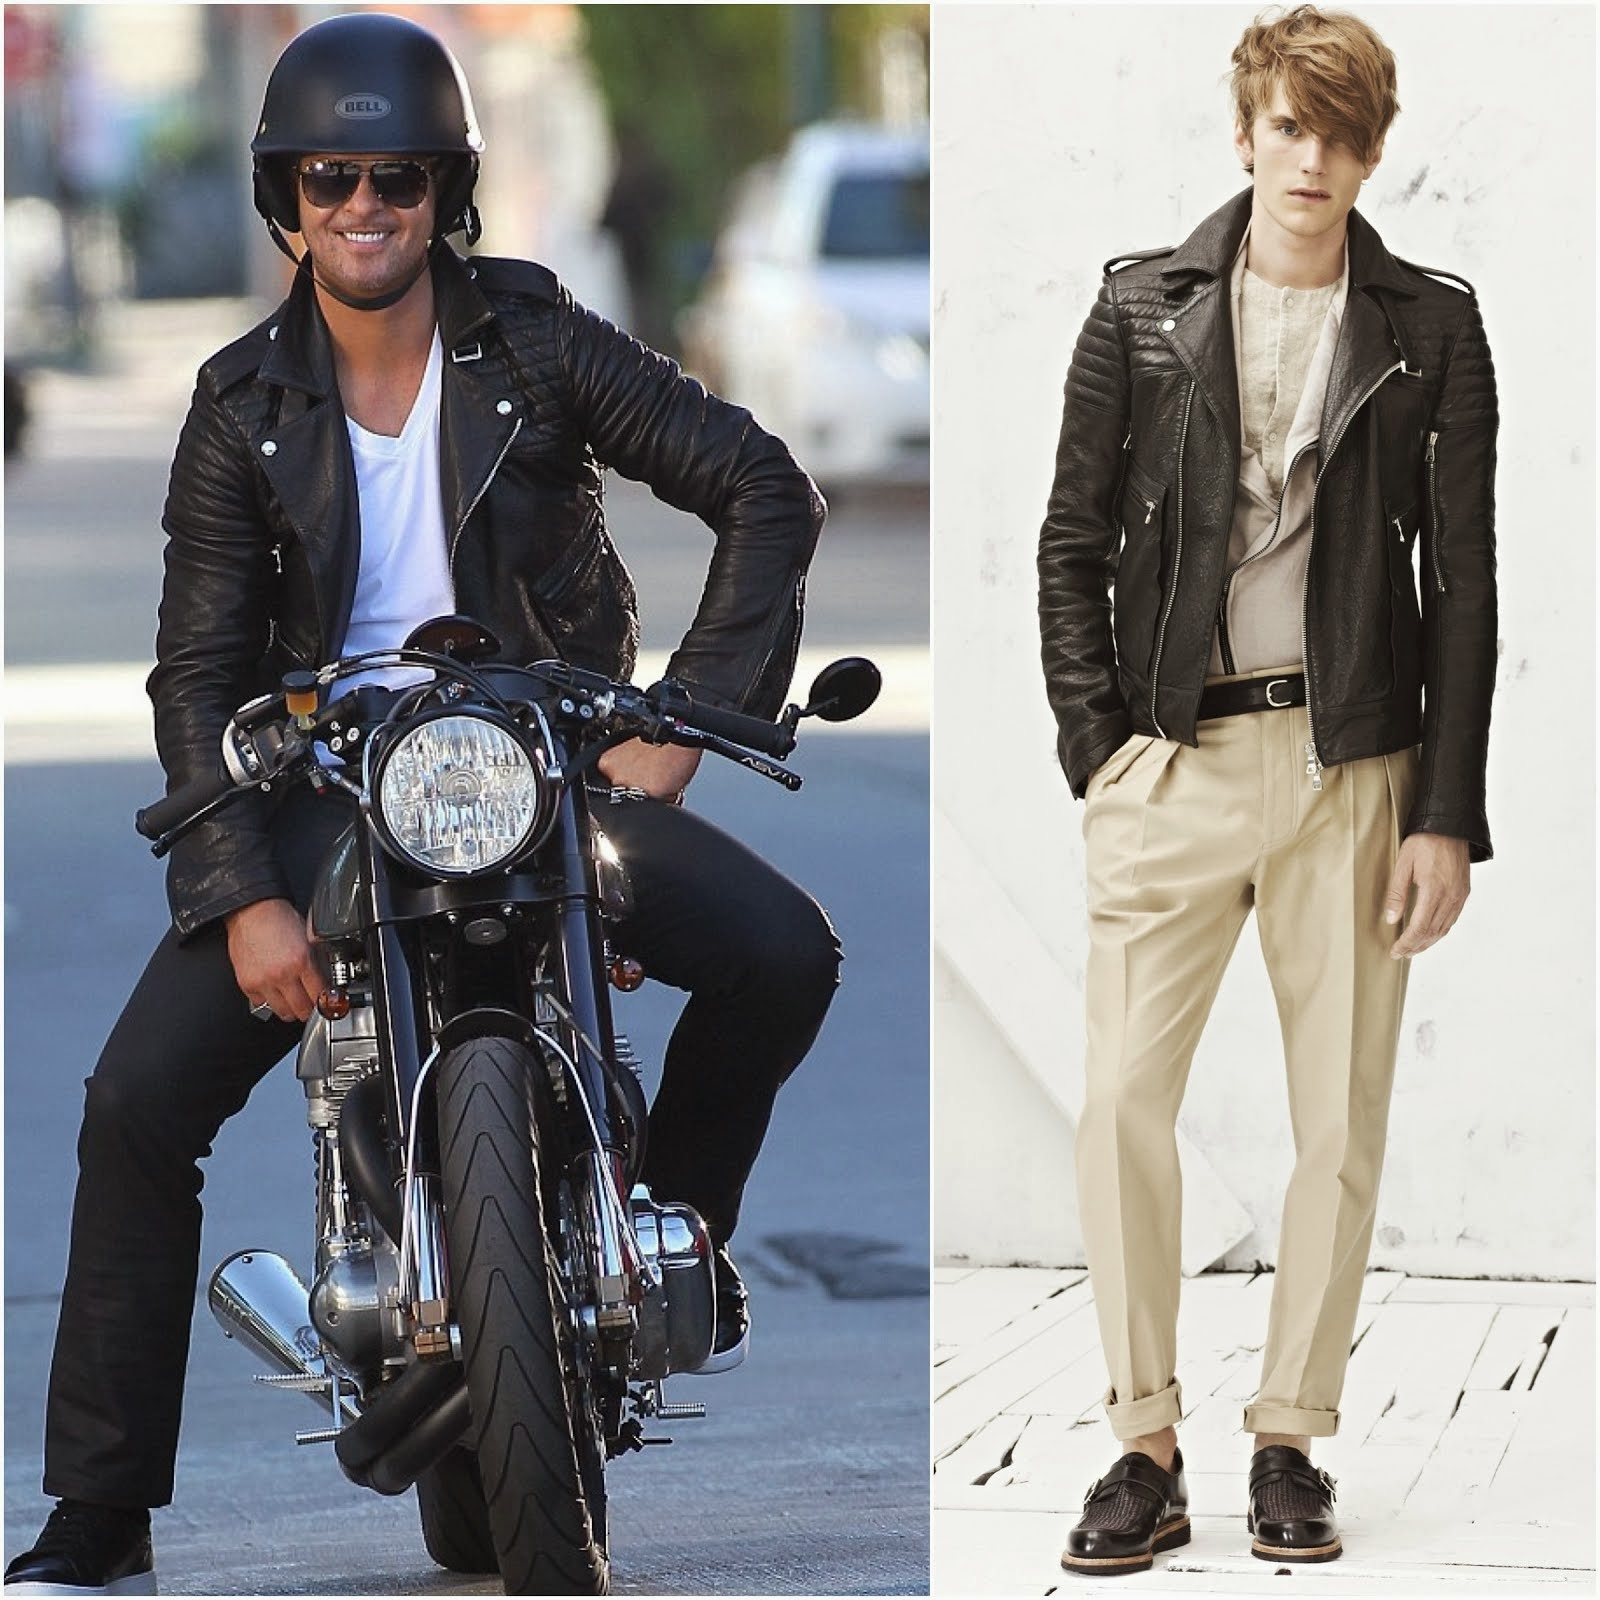 Robin Thicke filmed his latest MV in Balmain leather biker jacket - November 2013